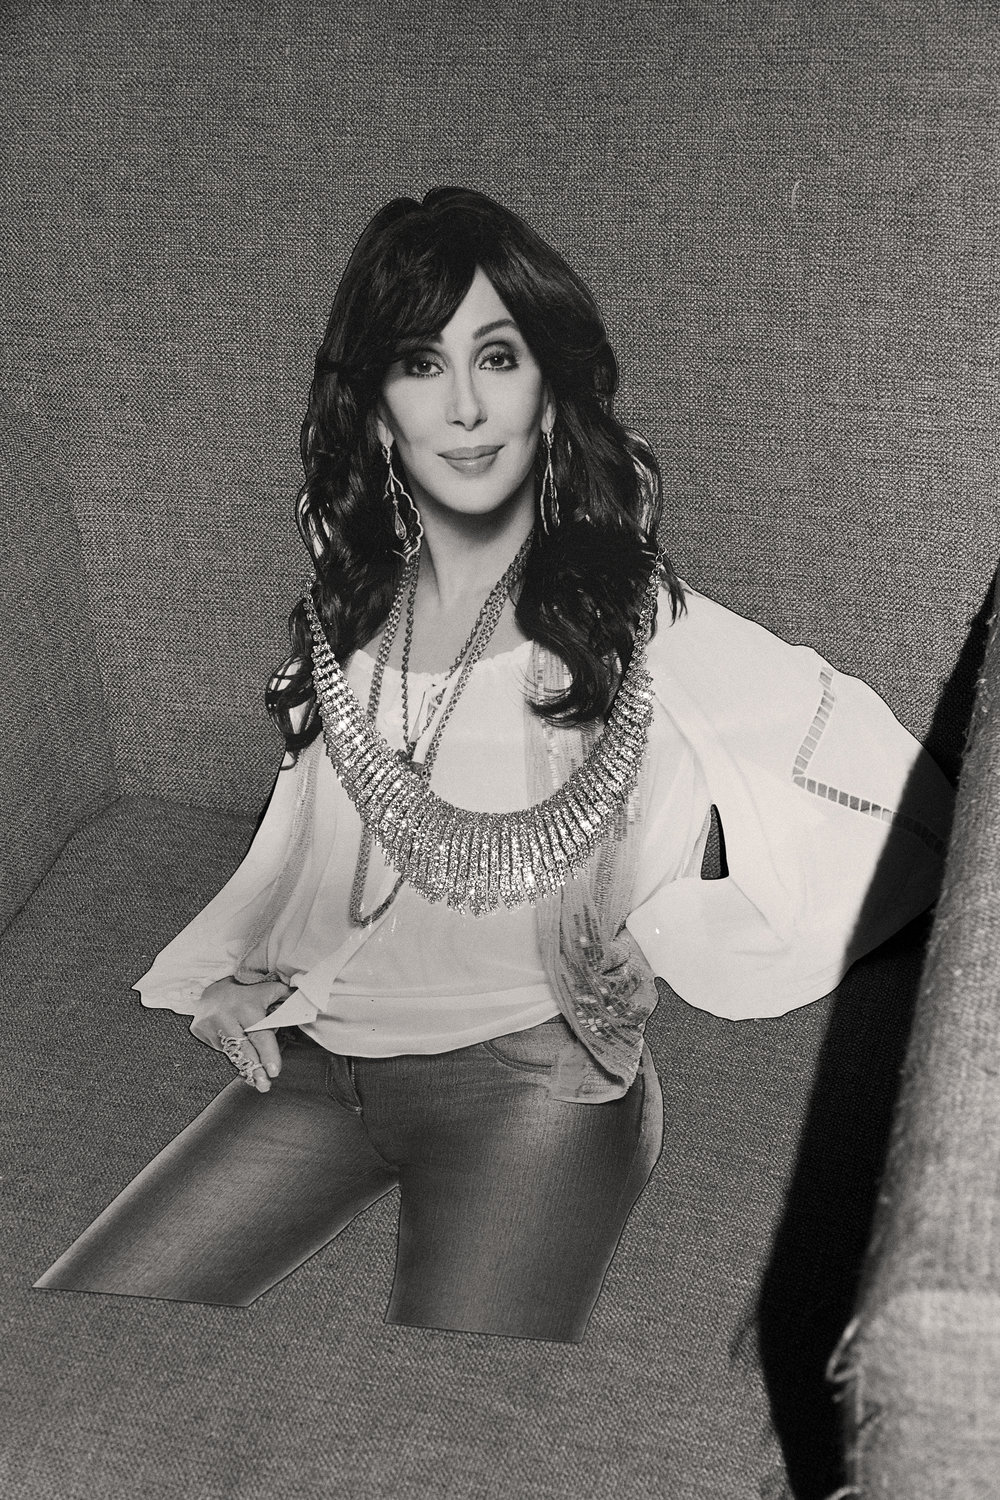 Needham_2018_Cher-In-A-Chair.jpg